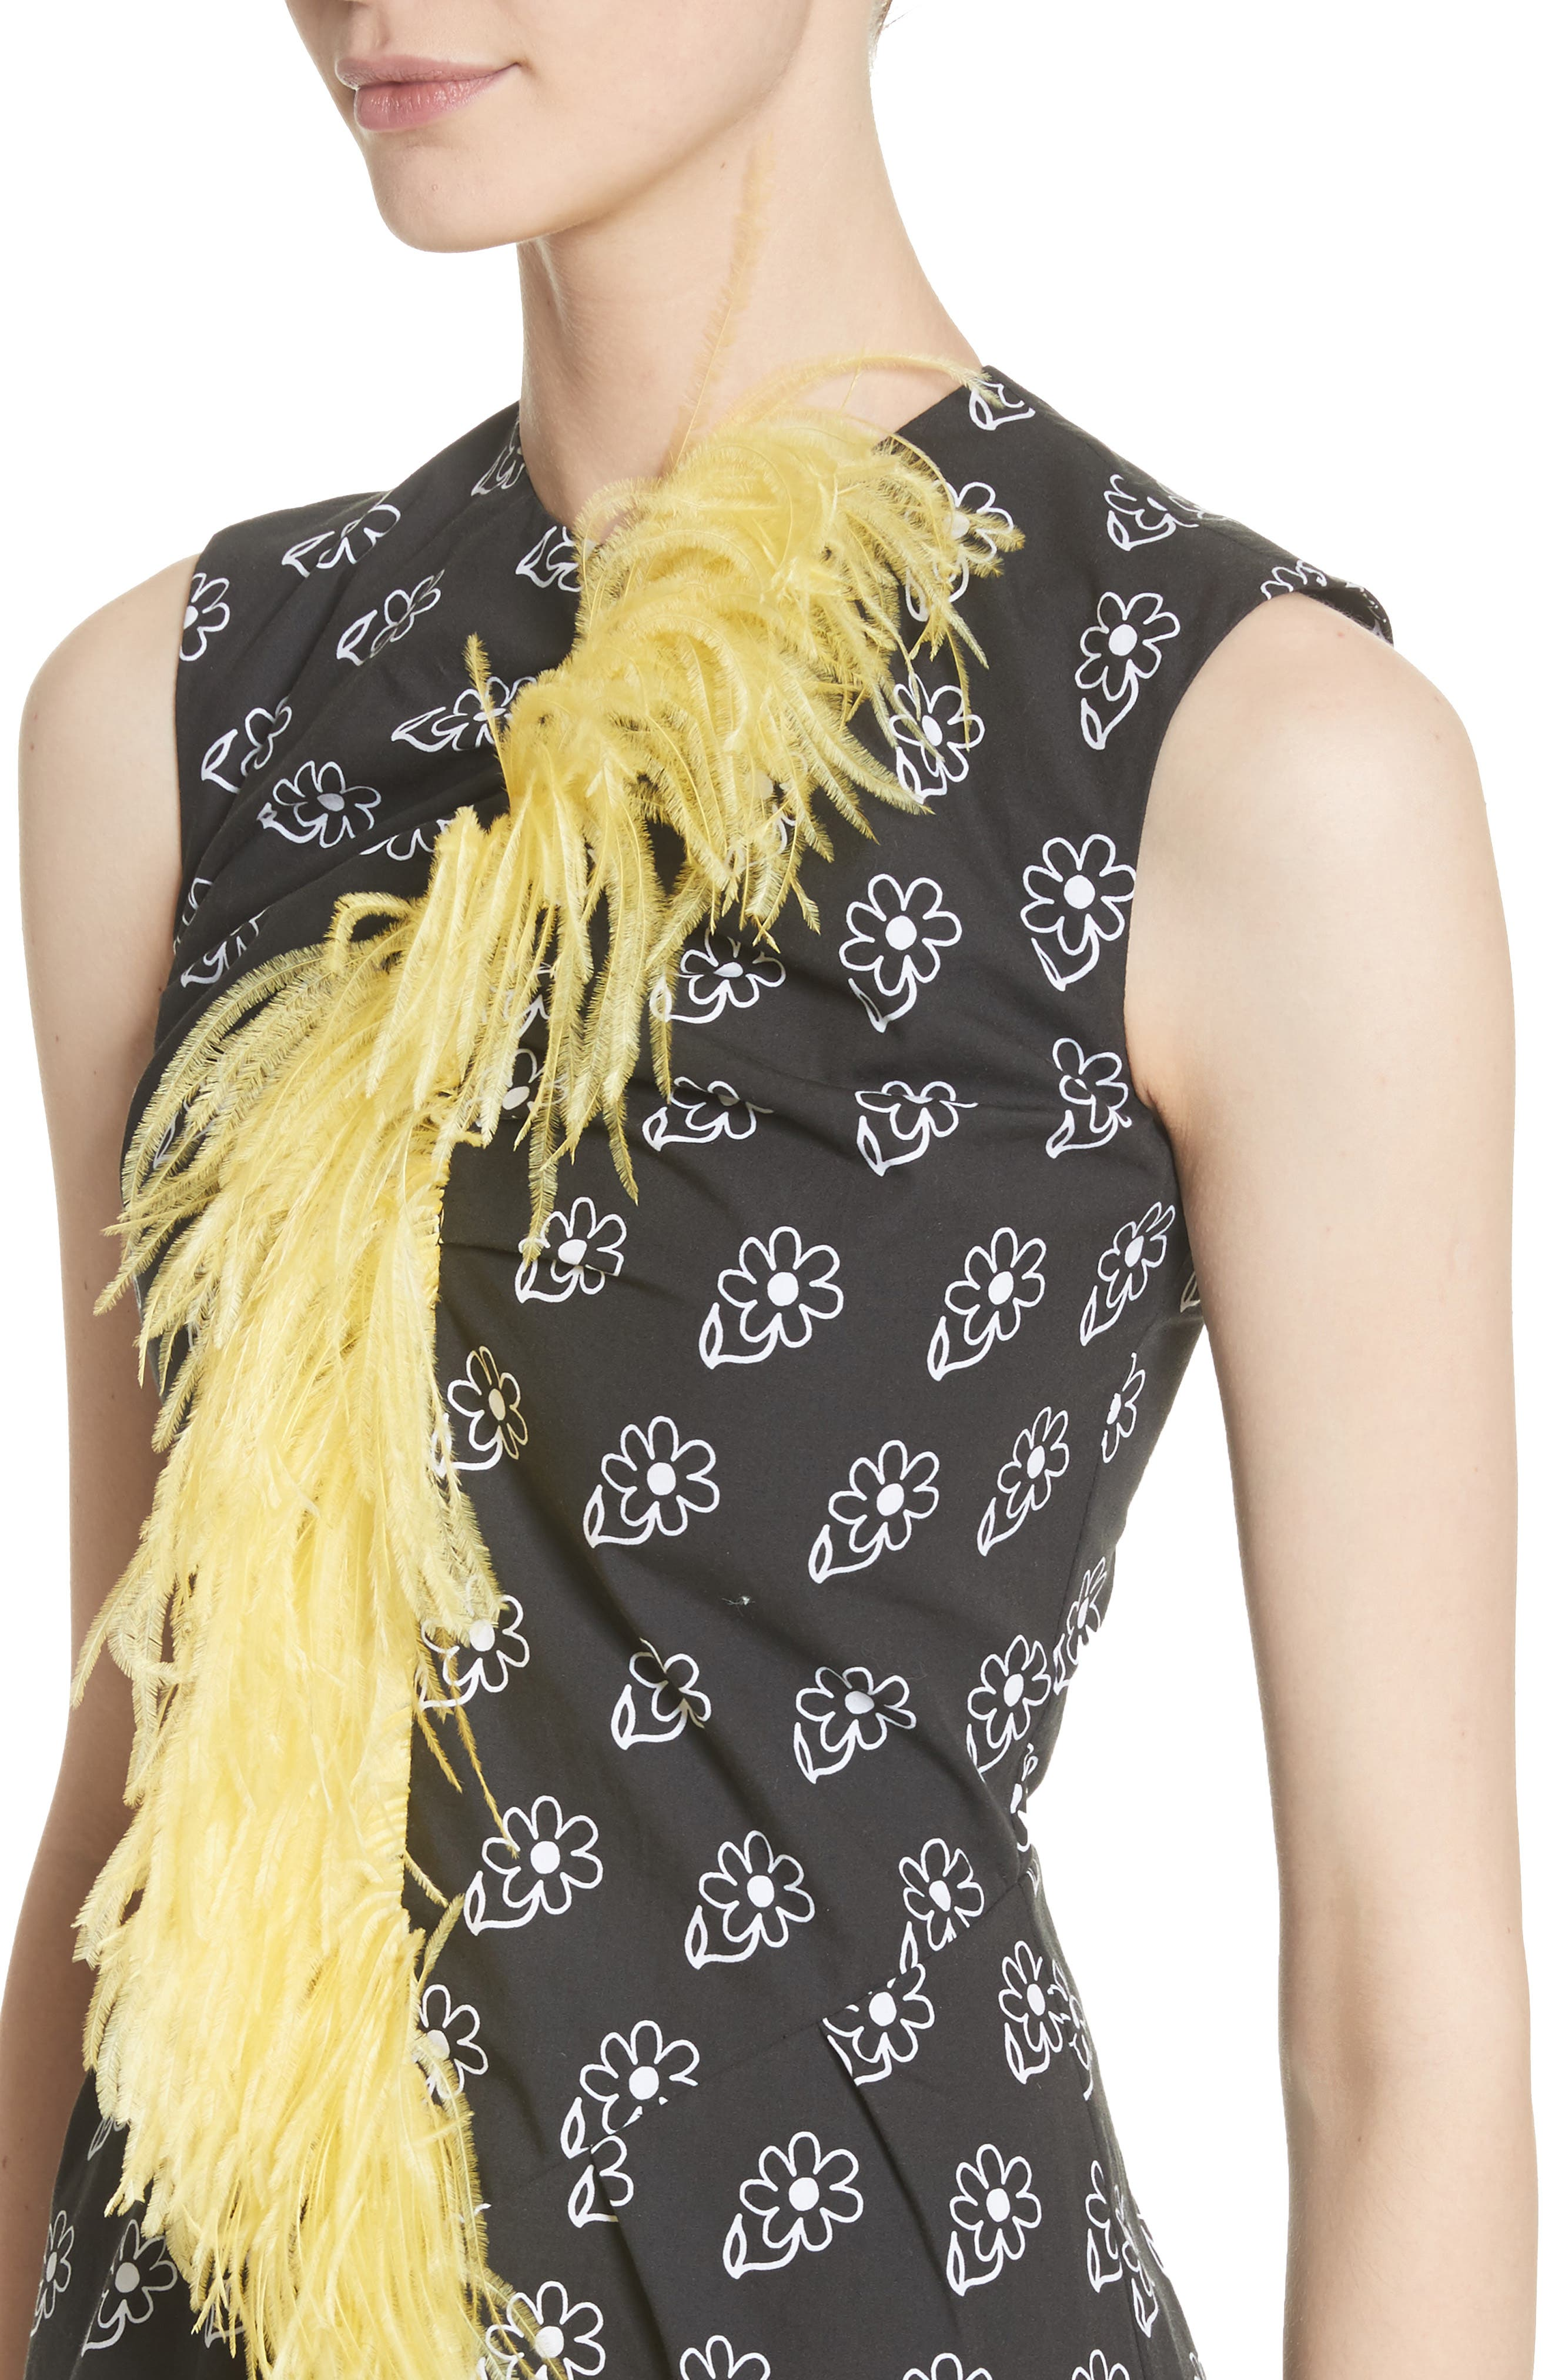 Bunny Sheath Dress with Ostrich Feather Trim,                             Alternate thumbnail 4, color,                             Black Daisy